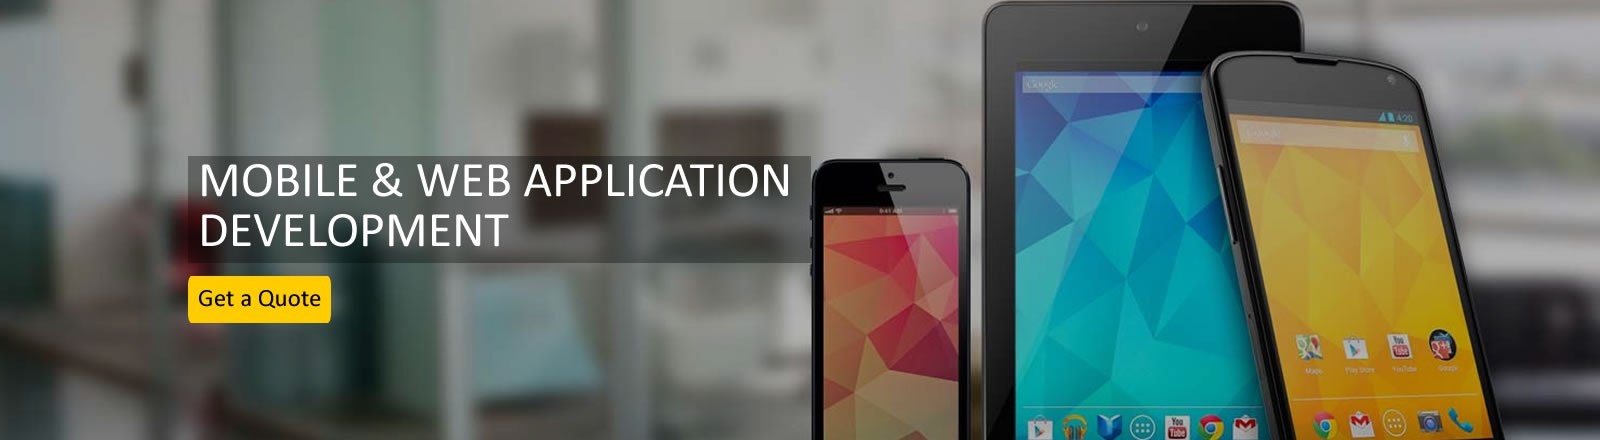 HOW TO DEVELOP A MOBILE APP IN NIGERIAHOW TO DEVELOP A MOBILE APP IN NIGERIA